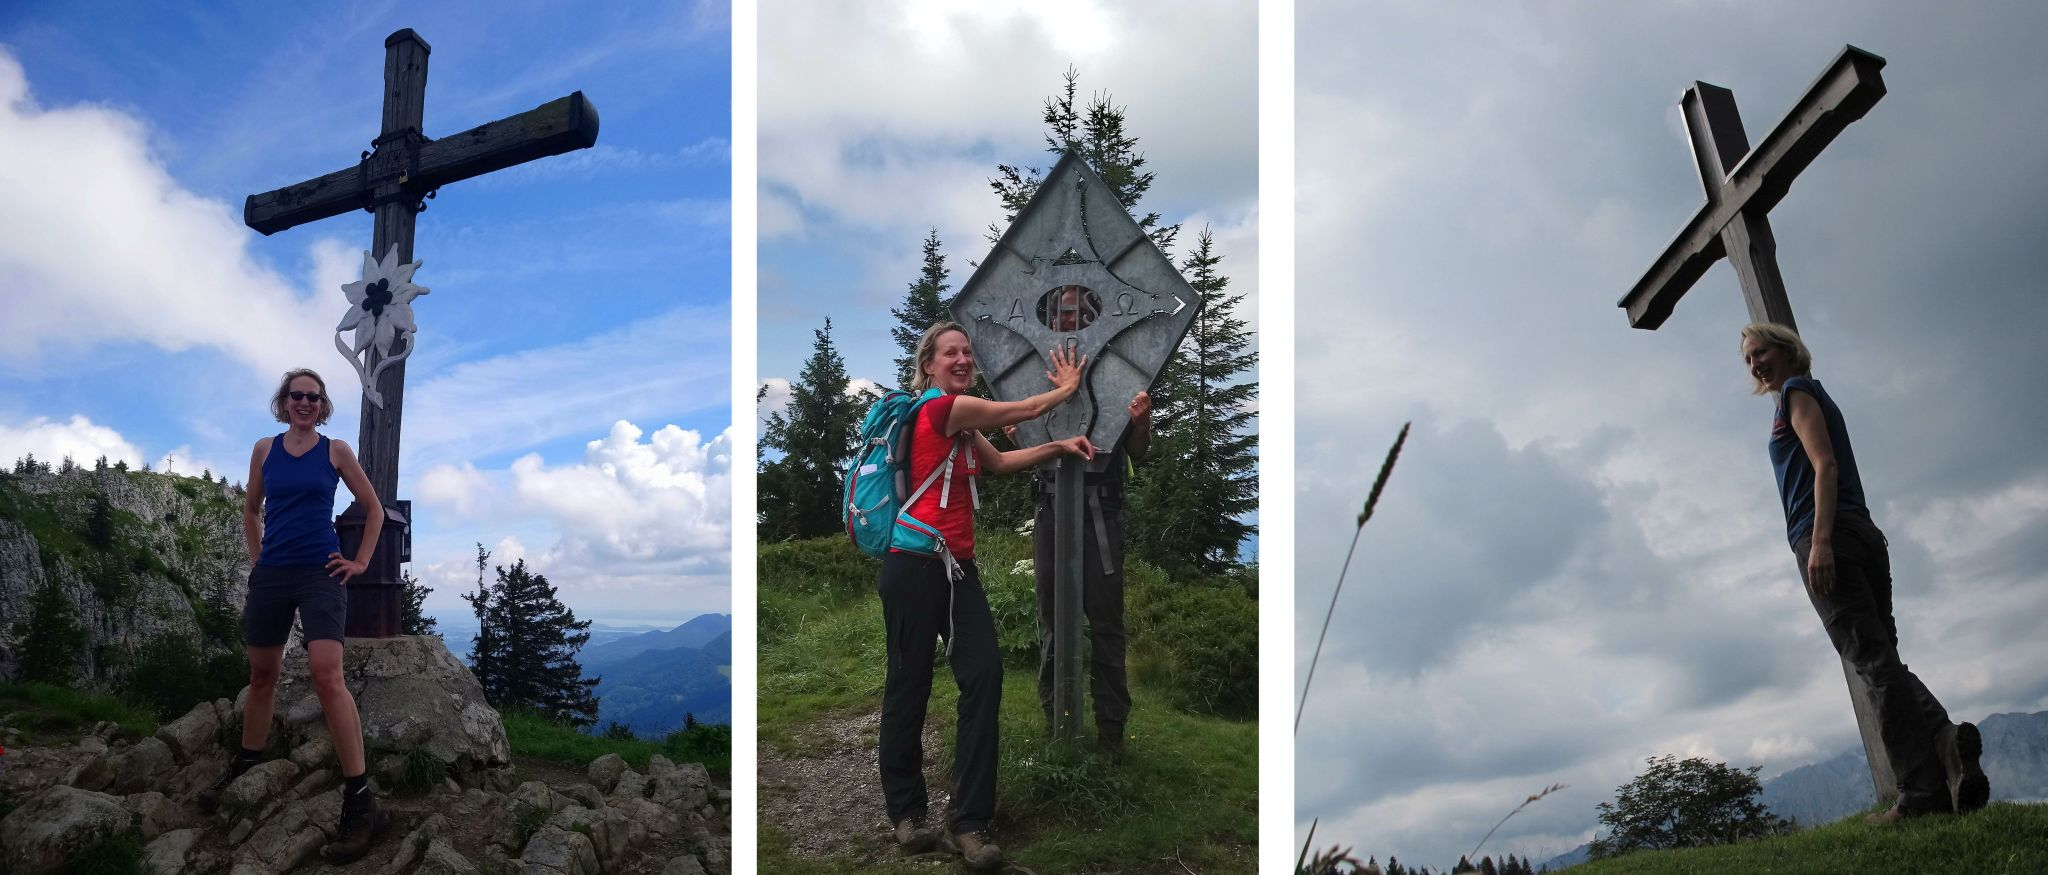 Hiking the Alps Chiemgau